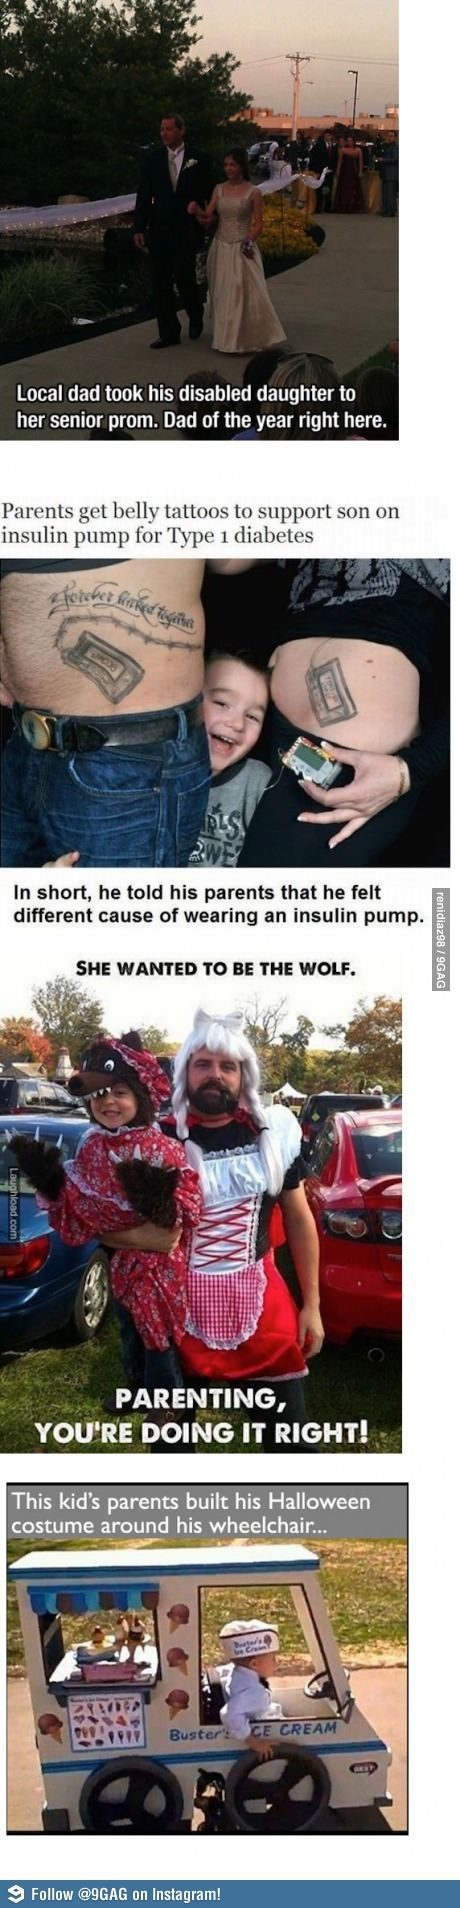 Parenting... you're doing it right! The one where she wanted to be the wolf is just fantastic.